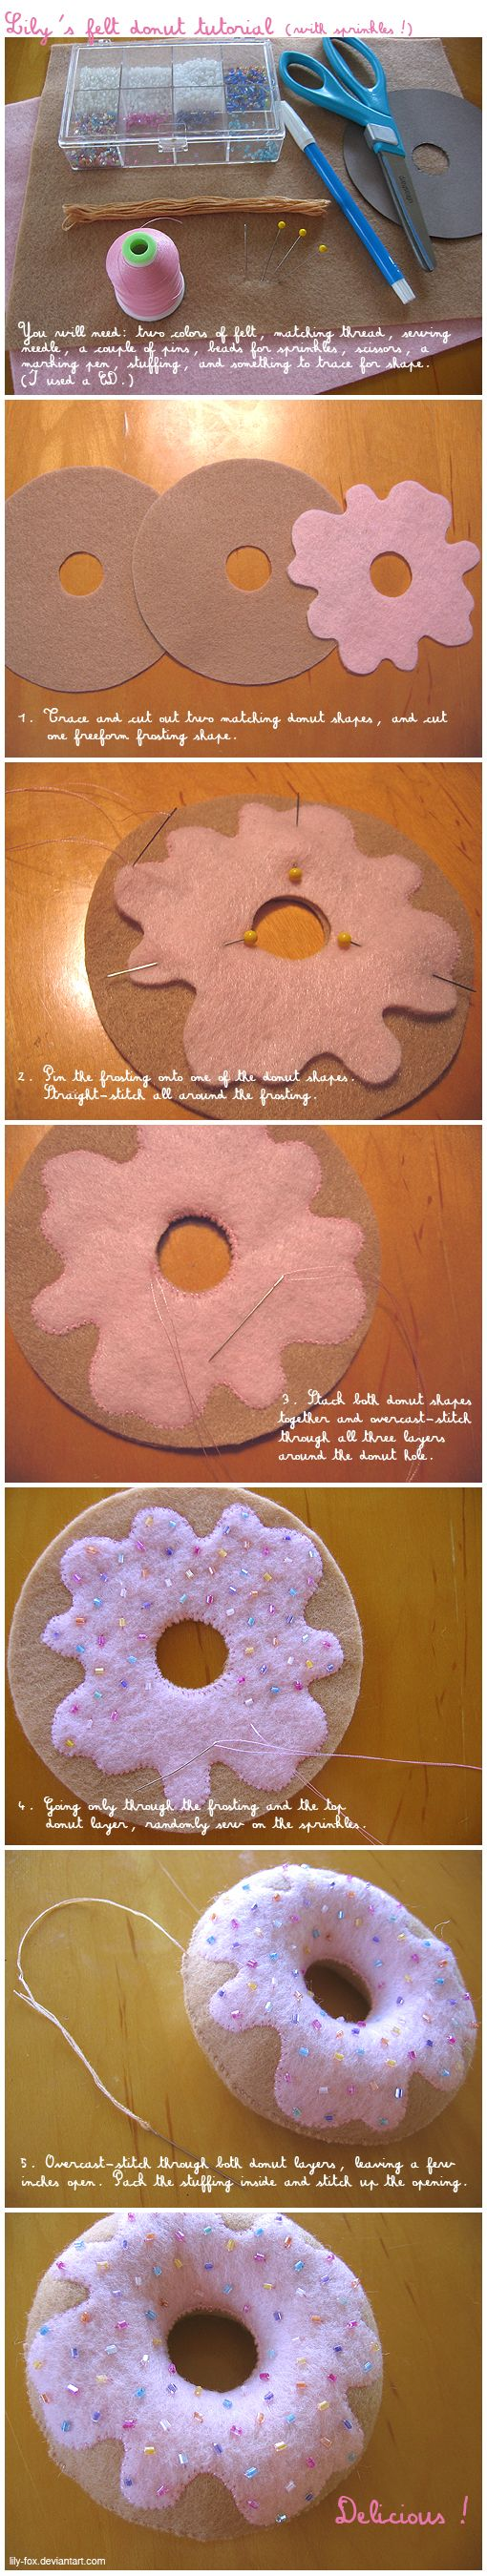 10 DIY Ways to Make Felt Toys for Endless Fun!  14 - https://www.facebook.com/different.solutions.page